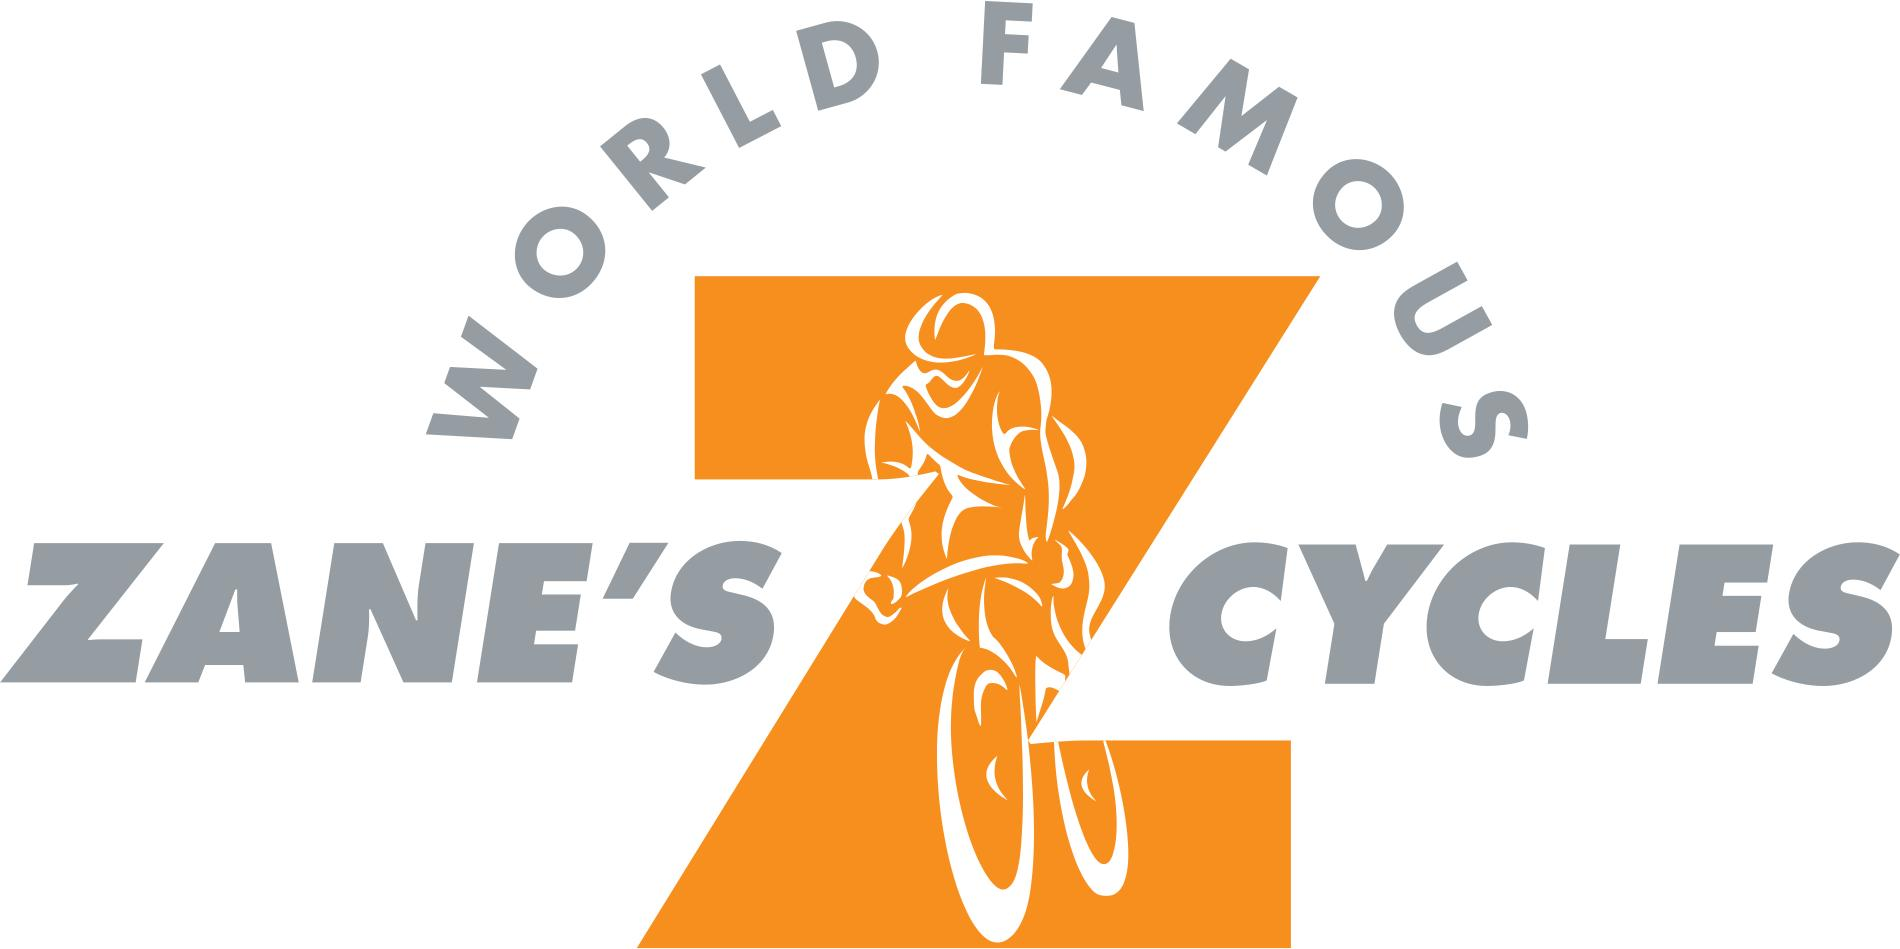 Zane's Cycles Home Page